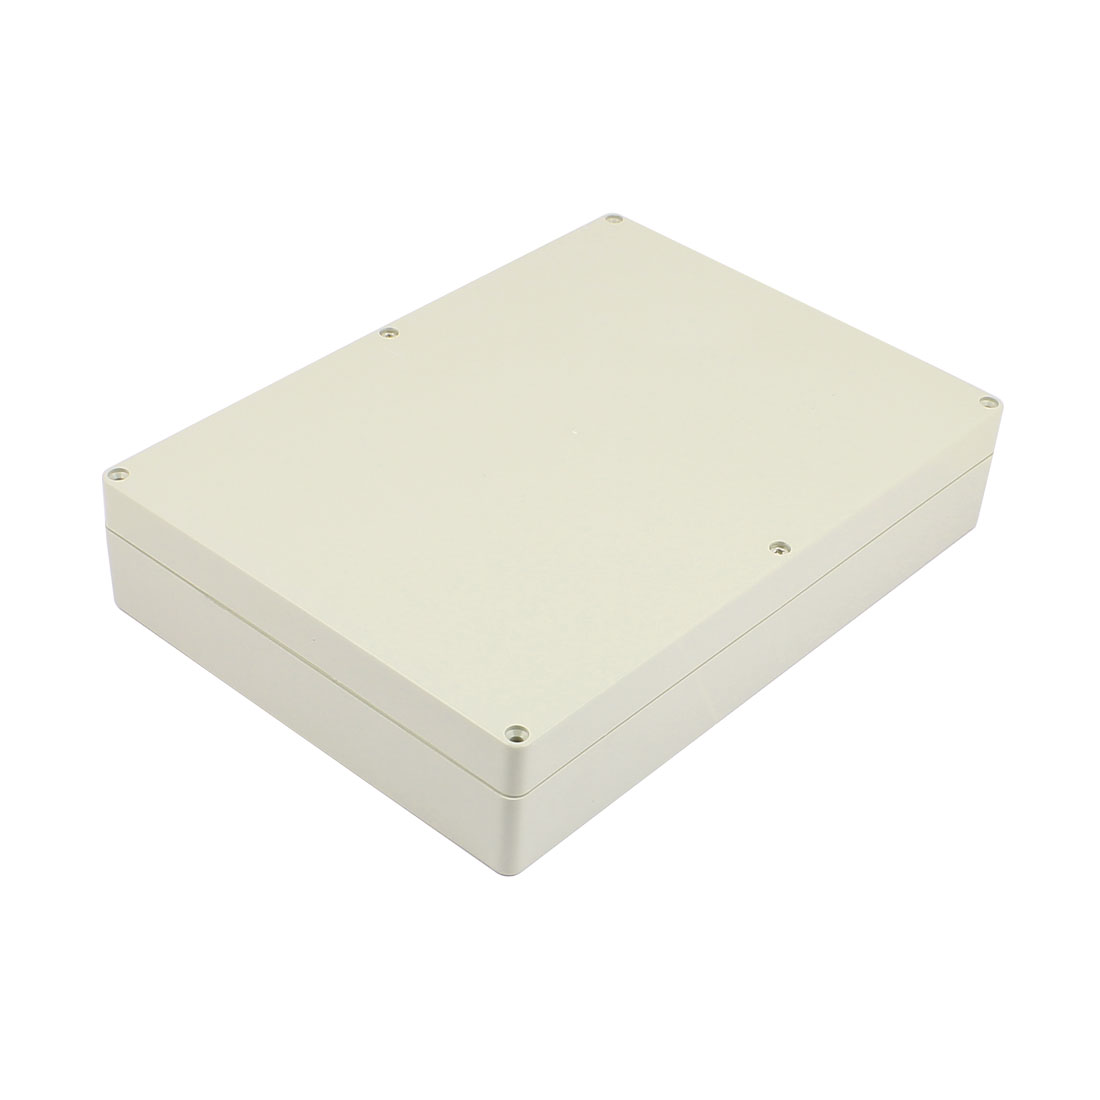 Dustproof IP65 Junction Box DIY Terminal Connection Enclosure Adaptable 282mm x 202mm x 52mm